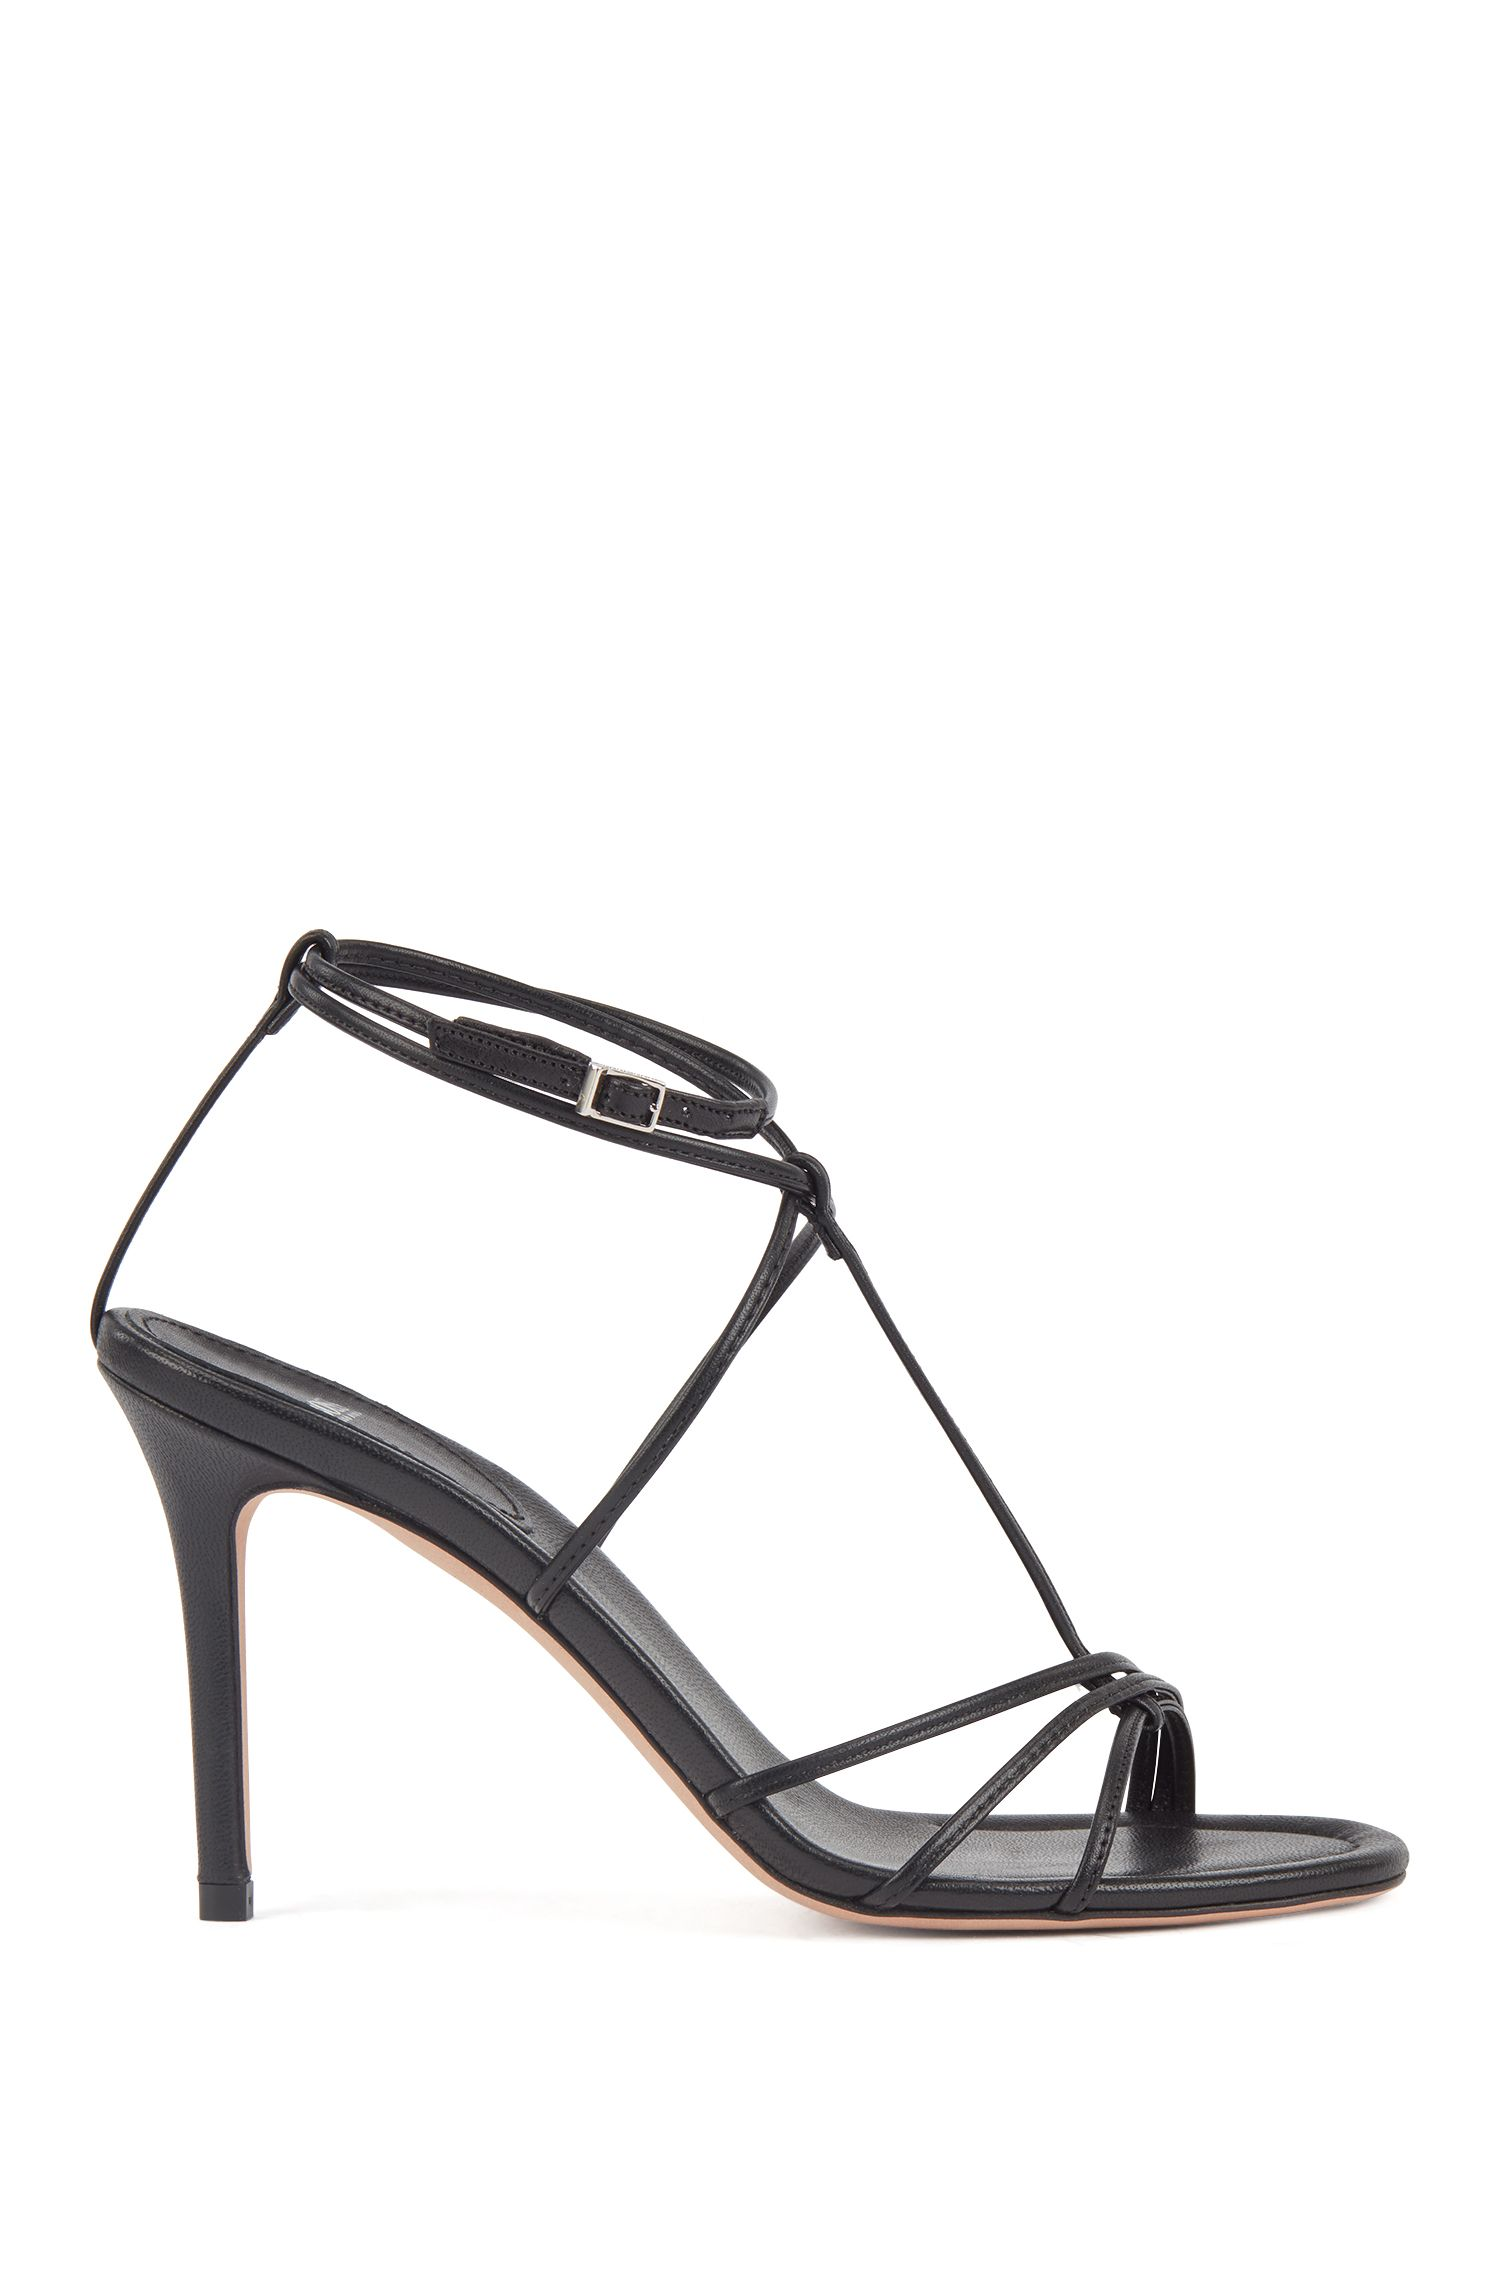 Strappy sandals in Italian lambskin with high heels, Black